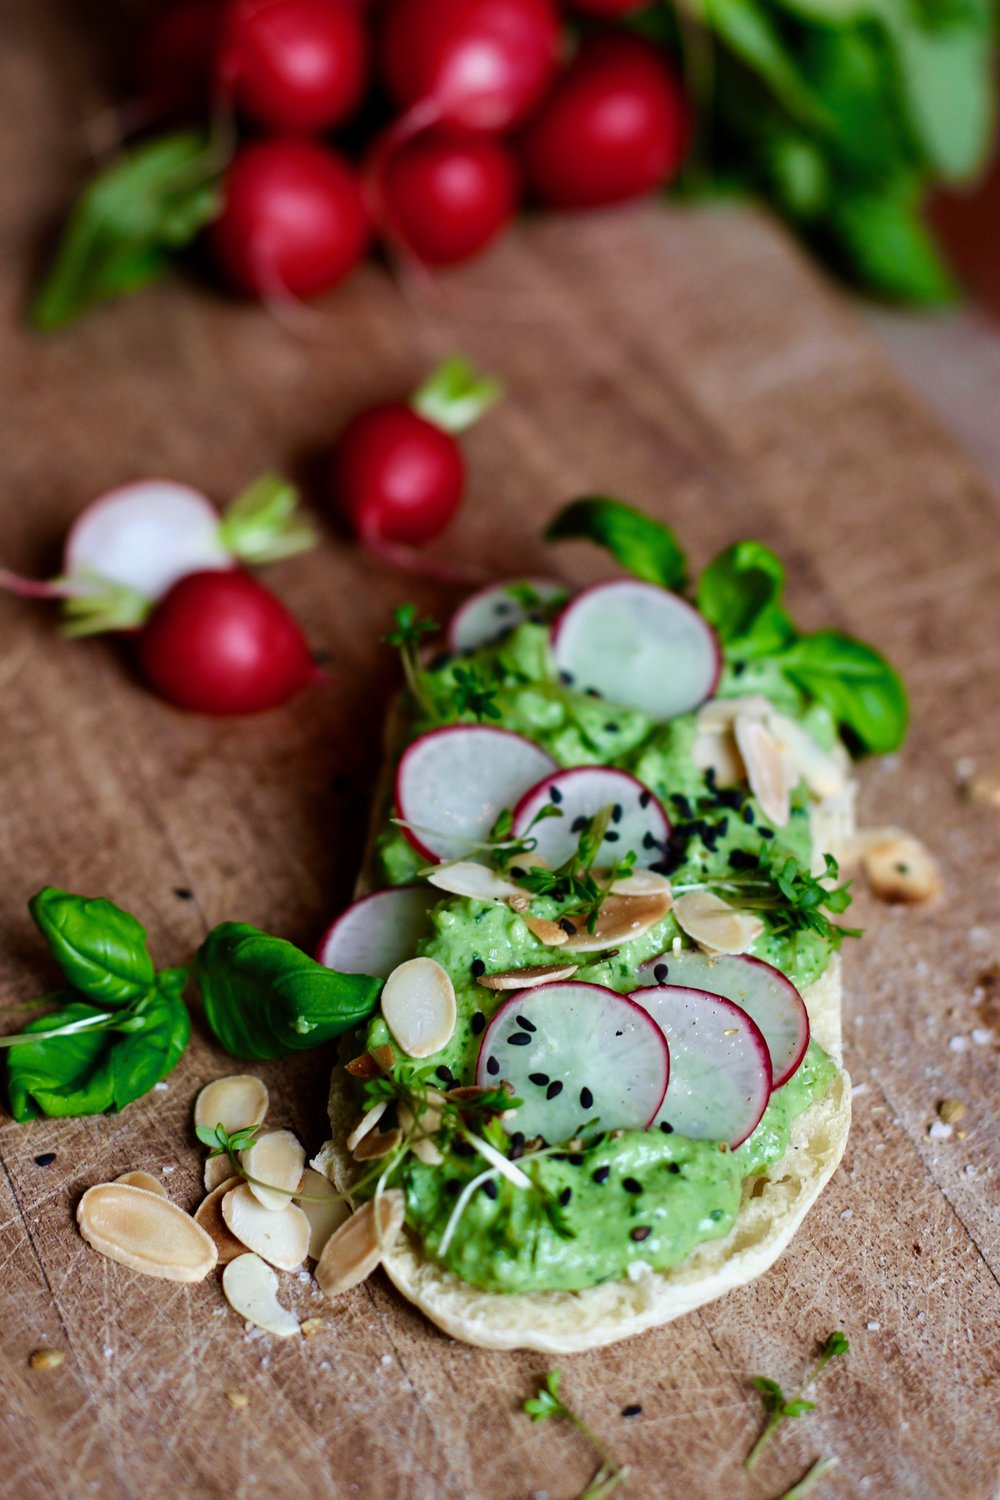 The Journal Off White Goats Dont Lie Tea Tree 300 Ml Healthy Twist On A Potato Salad Also Yummy Green Spread With Yogurt Almonds And Basil Has Been Great Alternative To Classic Avo Toast We